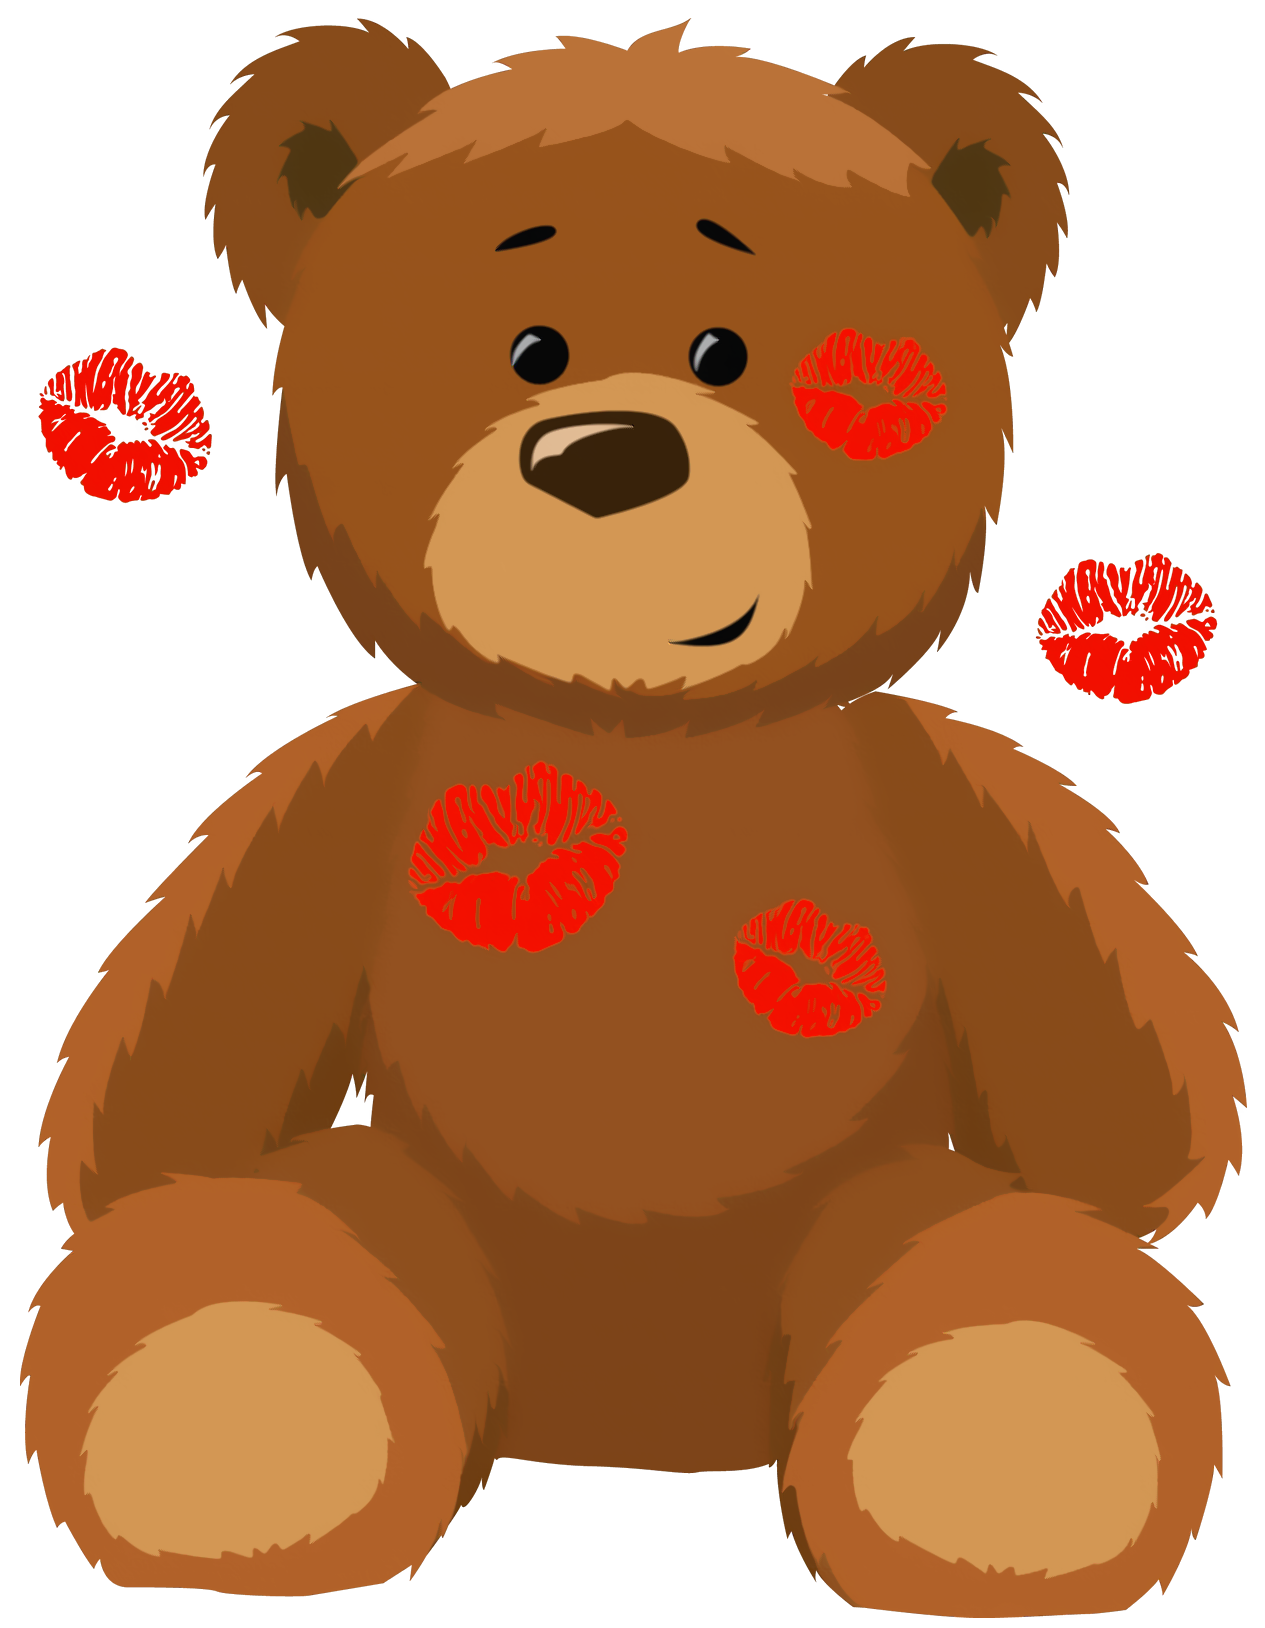 Cute with kisses png. Preschool clipart bear